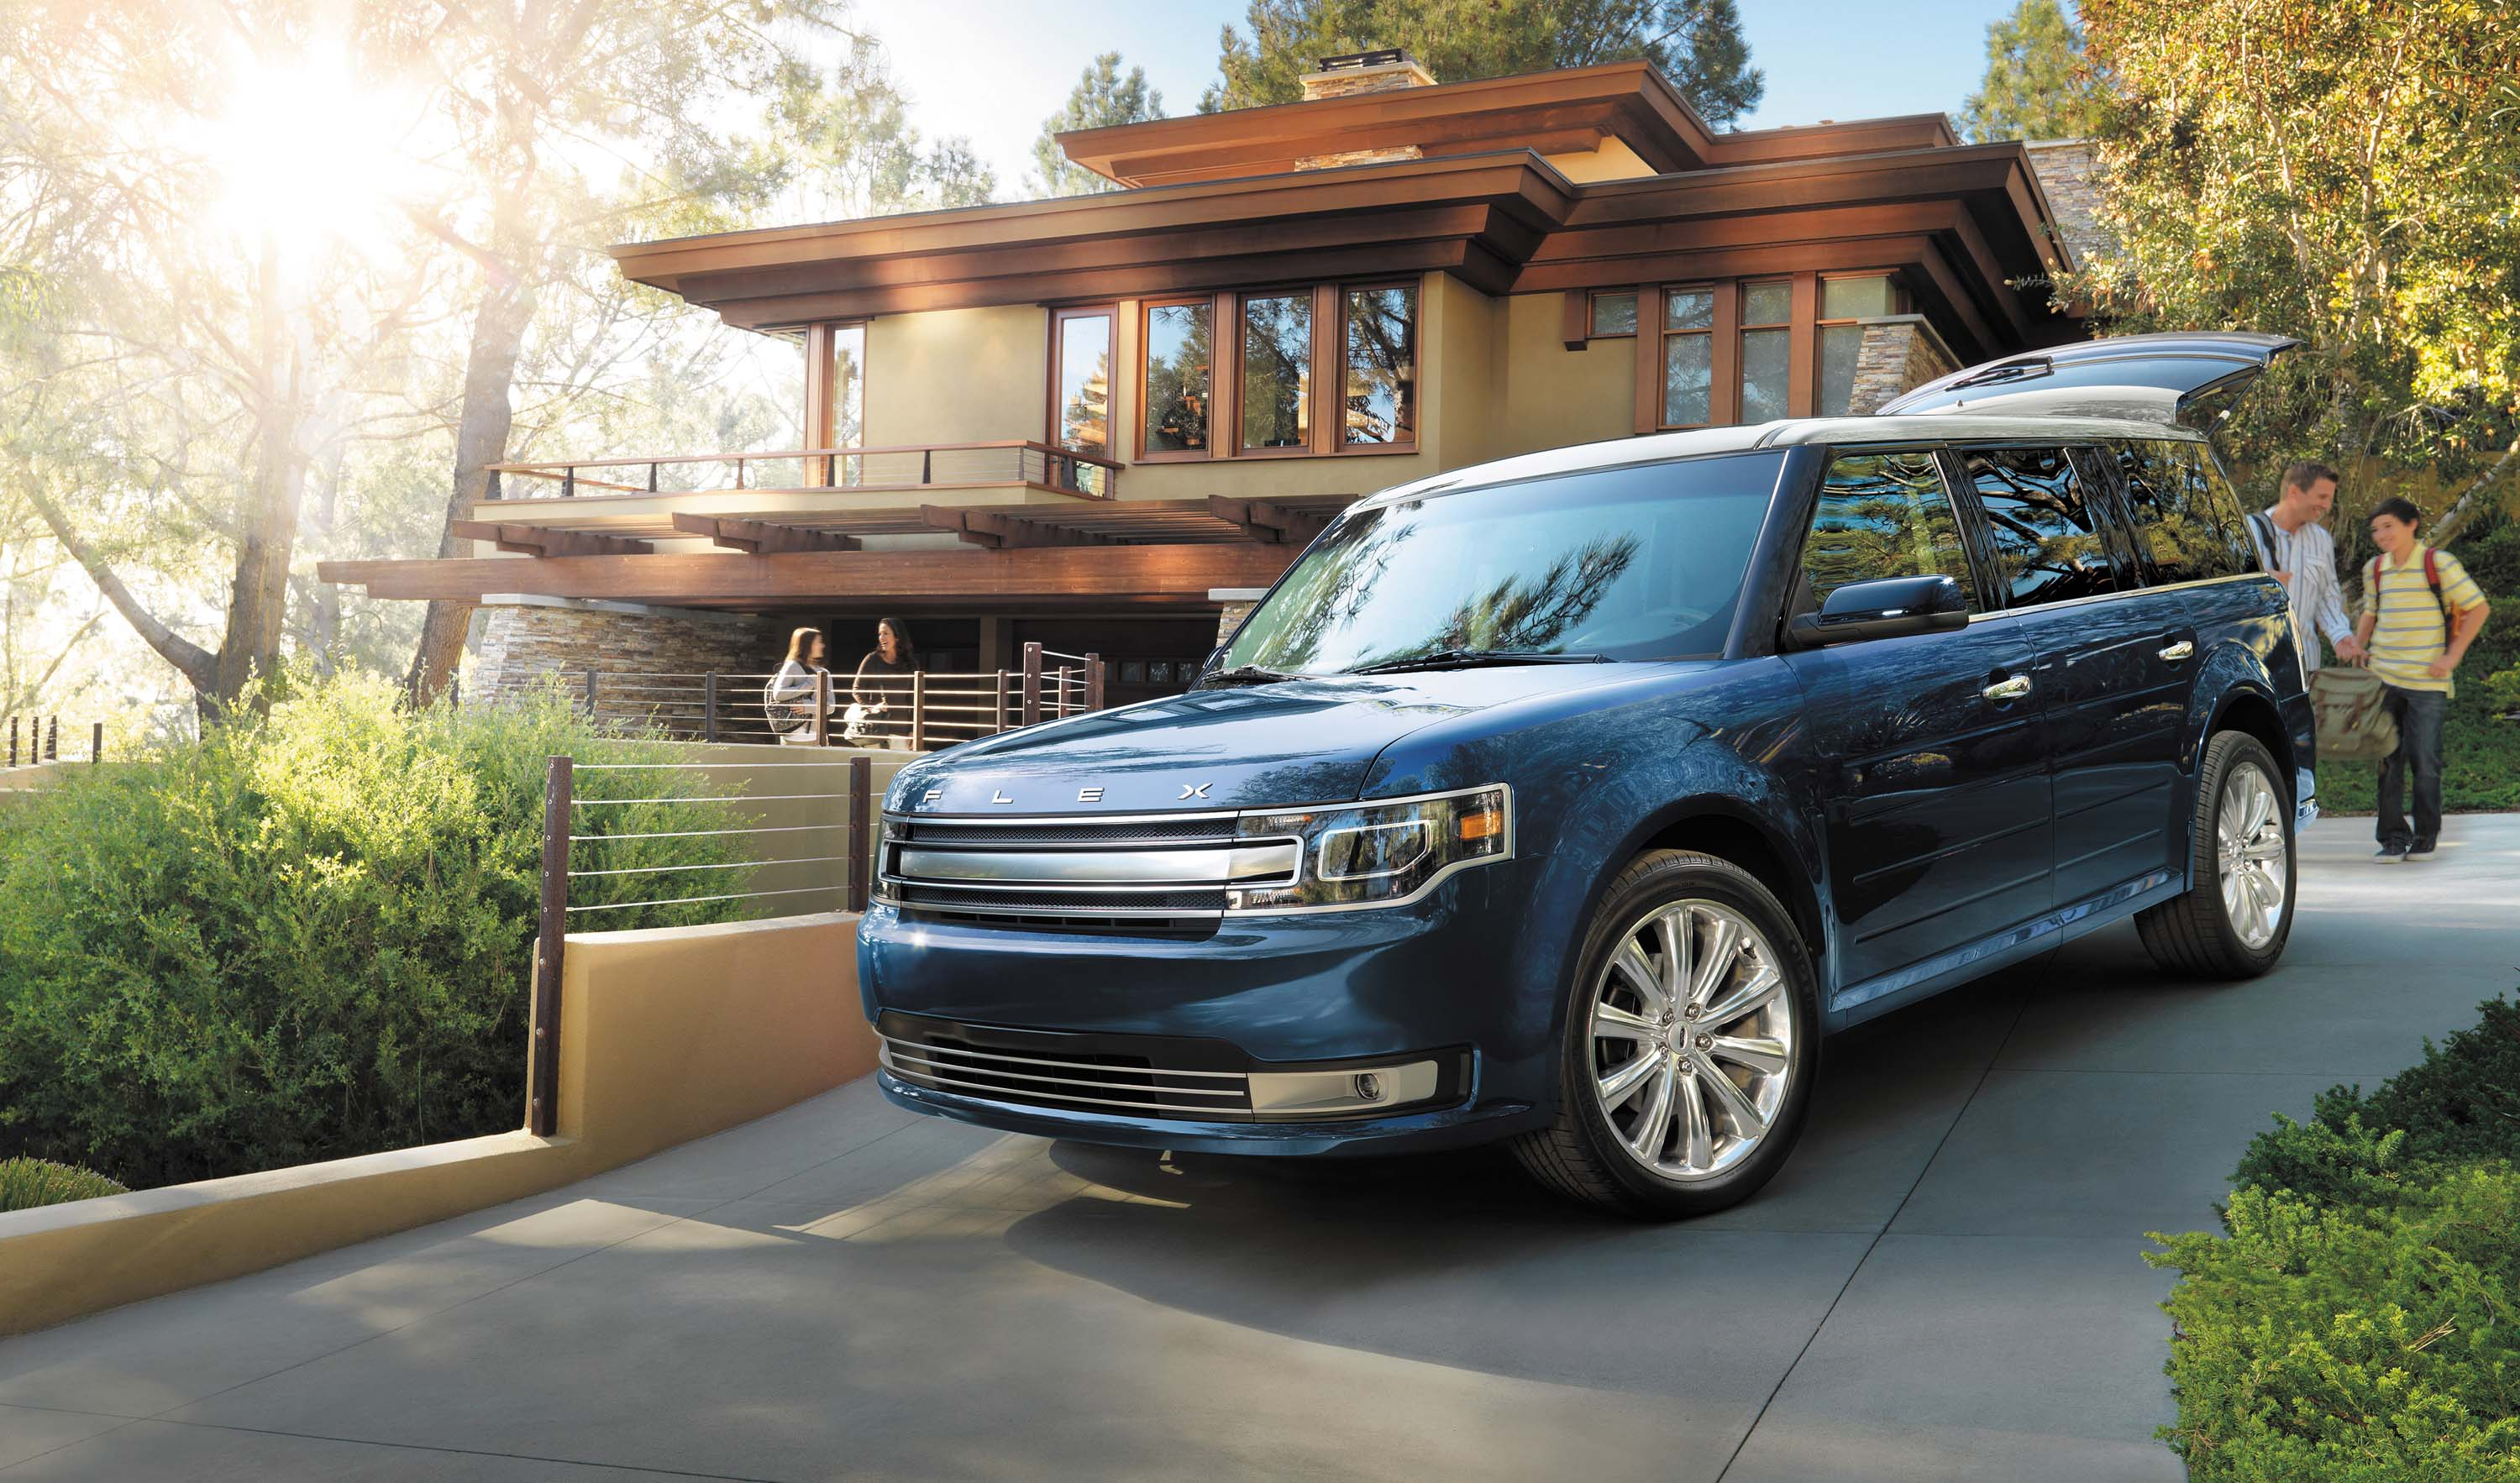 2013 ford flex fuel filter new and used ford flex prices  photos  reviews  specs the car  new and used ford flex prices  photos